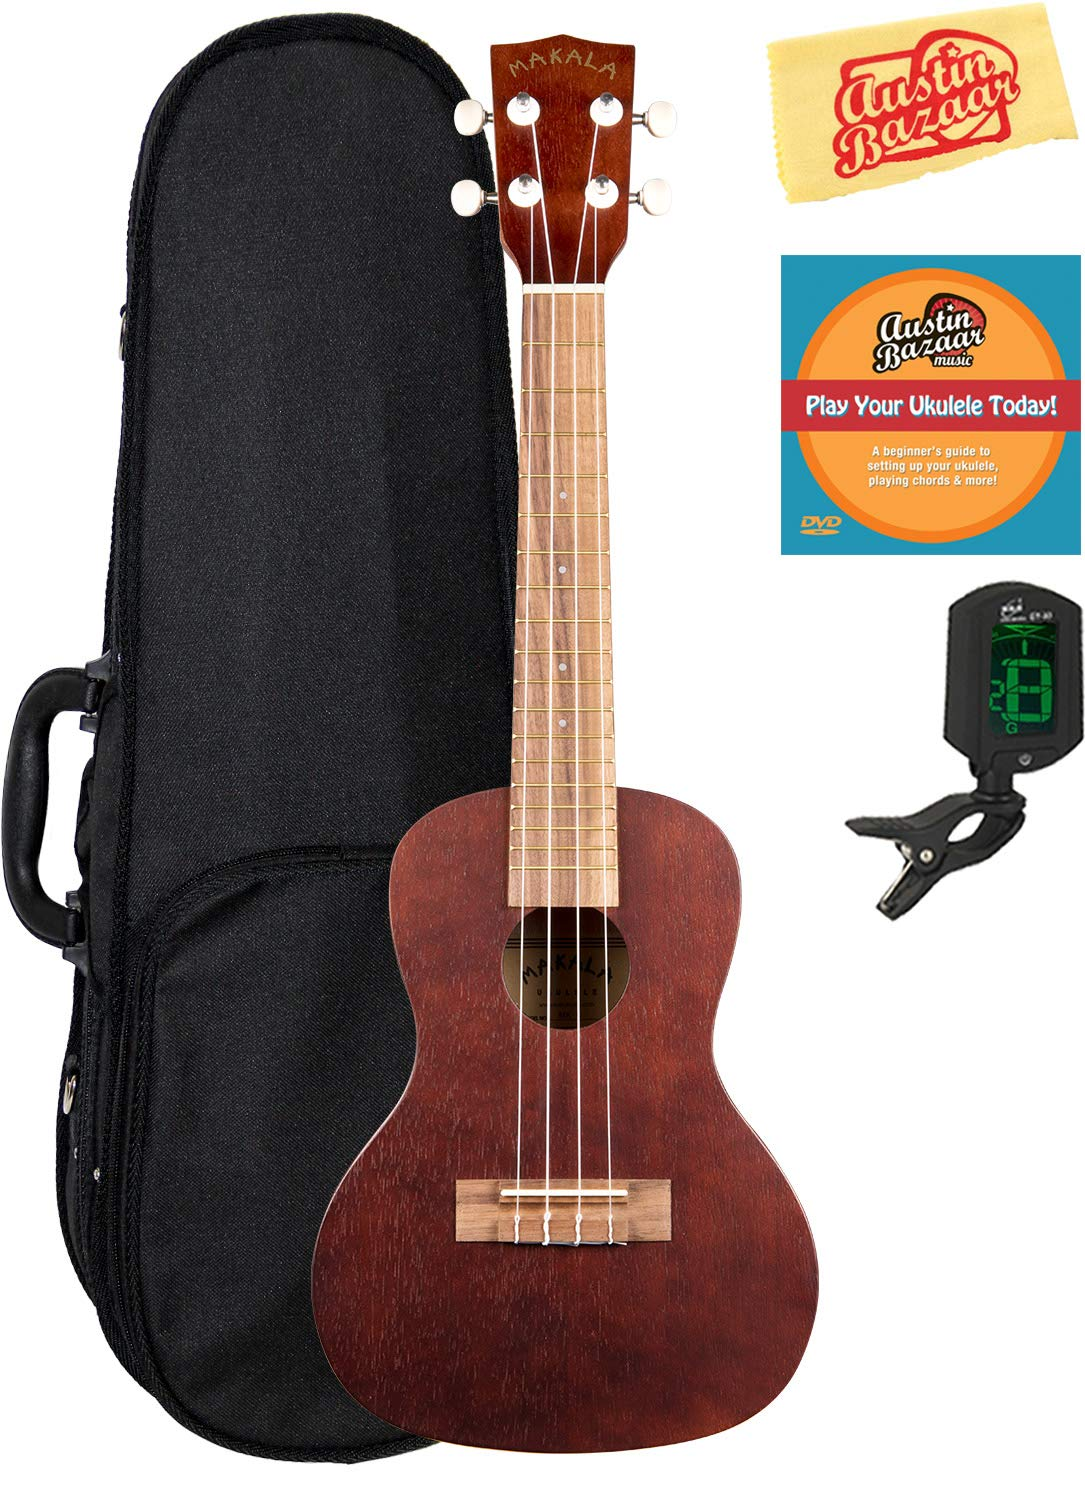 Kala KA-MK-C Makala Concert Ukulele Bundle with Hard Case, Cherub Tuner, and Polishing Cloth MK-C-COMBO-DLX